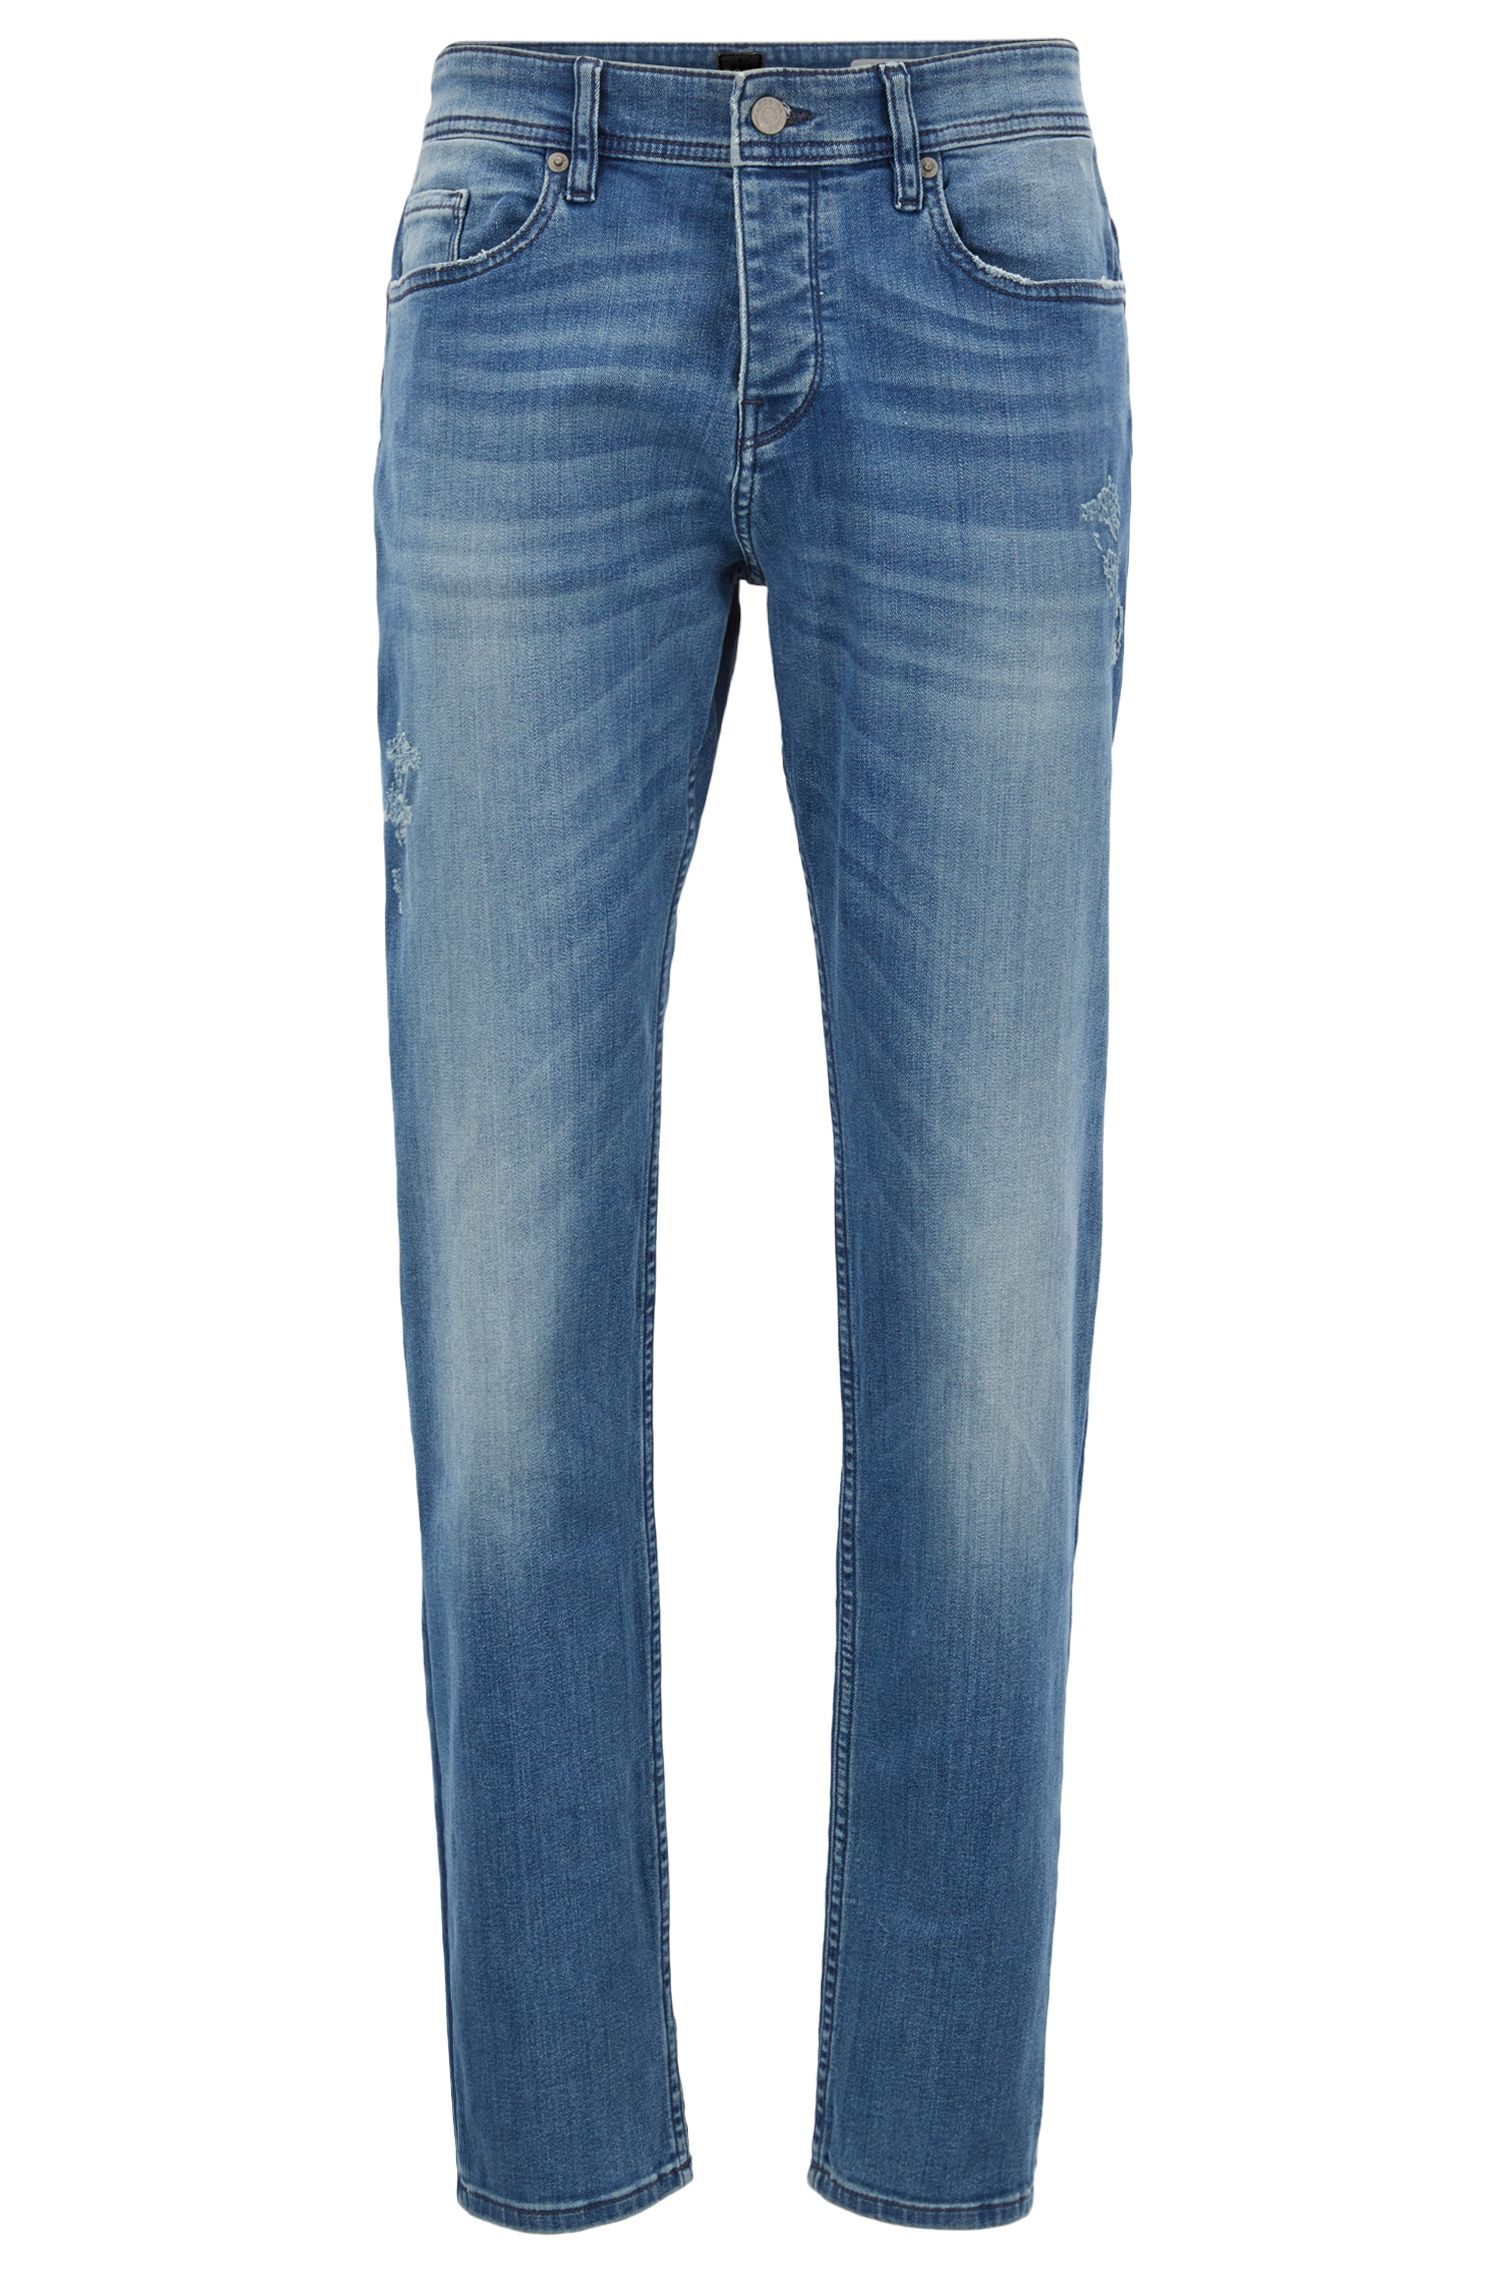 12 oz Stretch Cotton Jeans, Tapered Fit | Orange 90